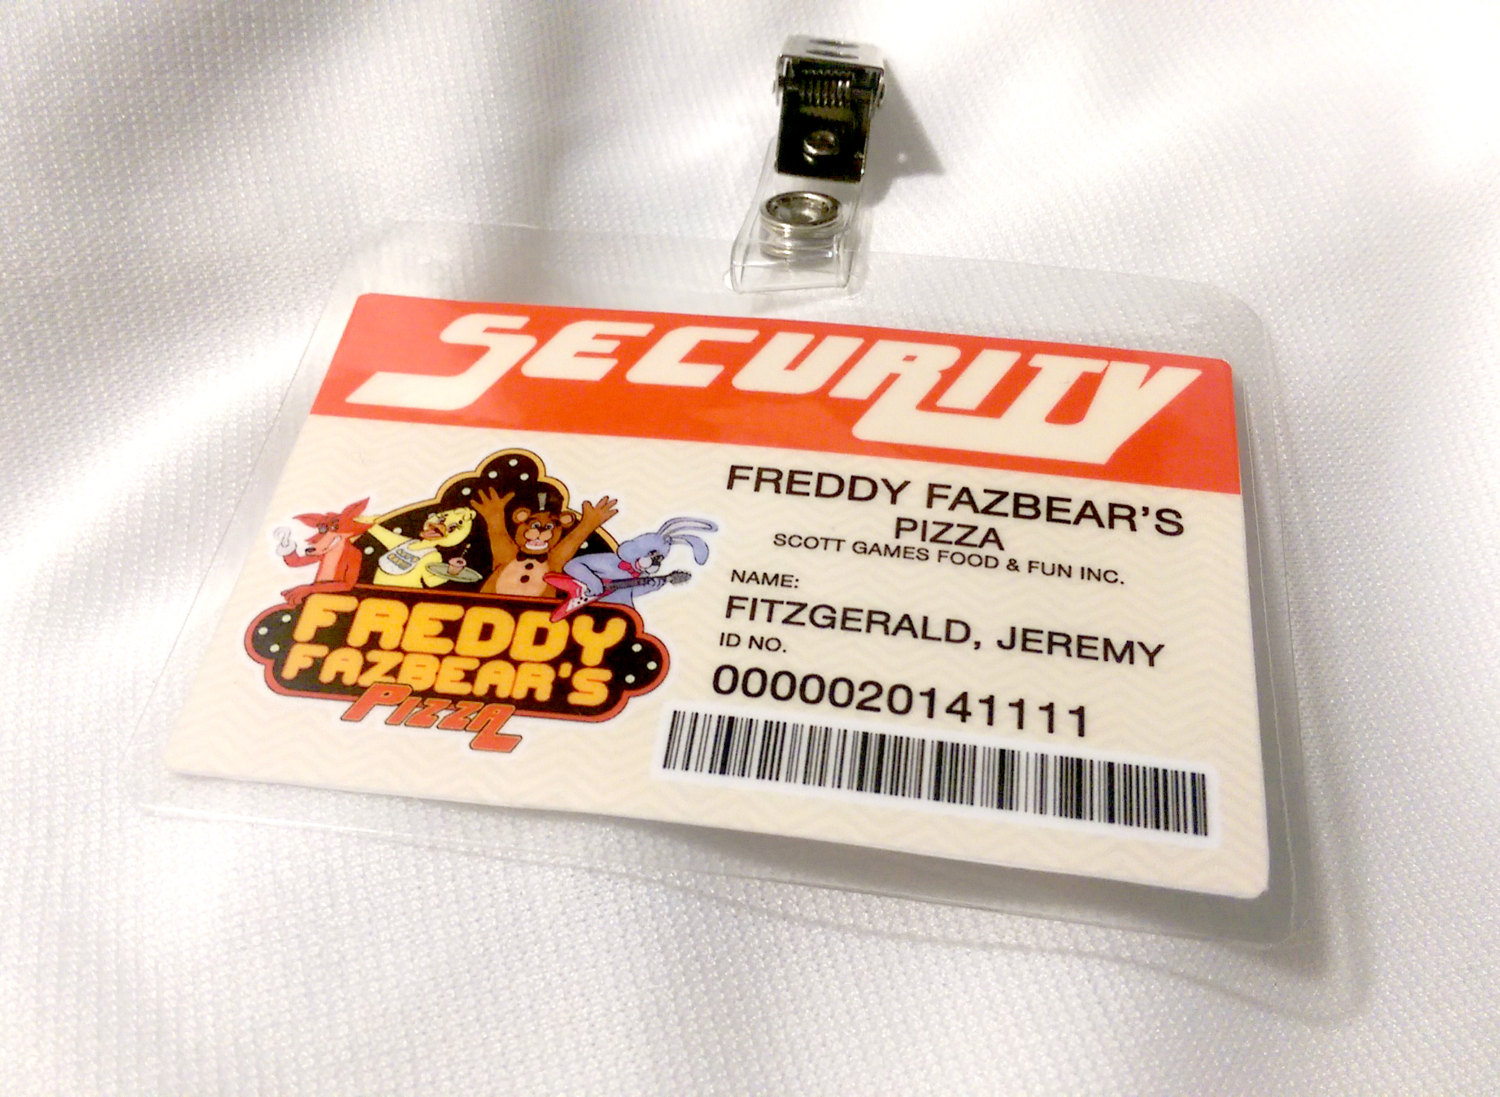 Freddy frazbears pizza phone number - Il_fullxfull 800677002_3px3_small